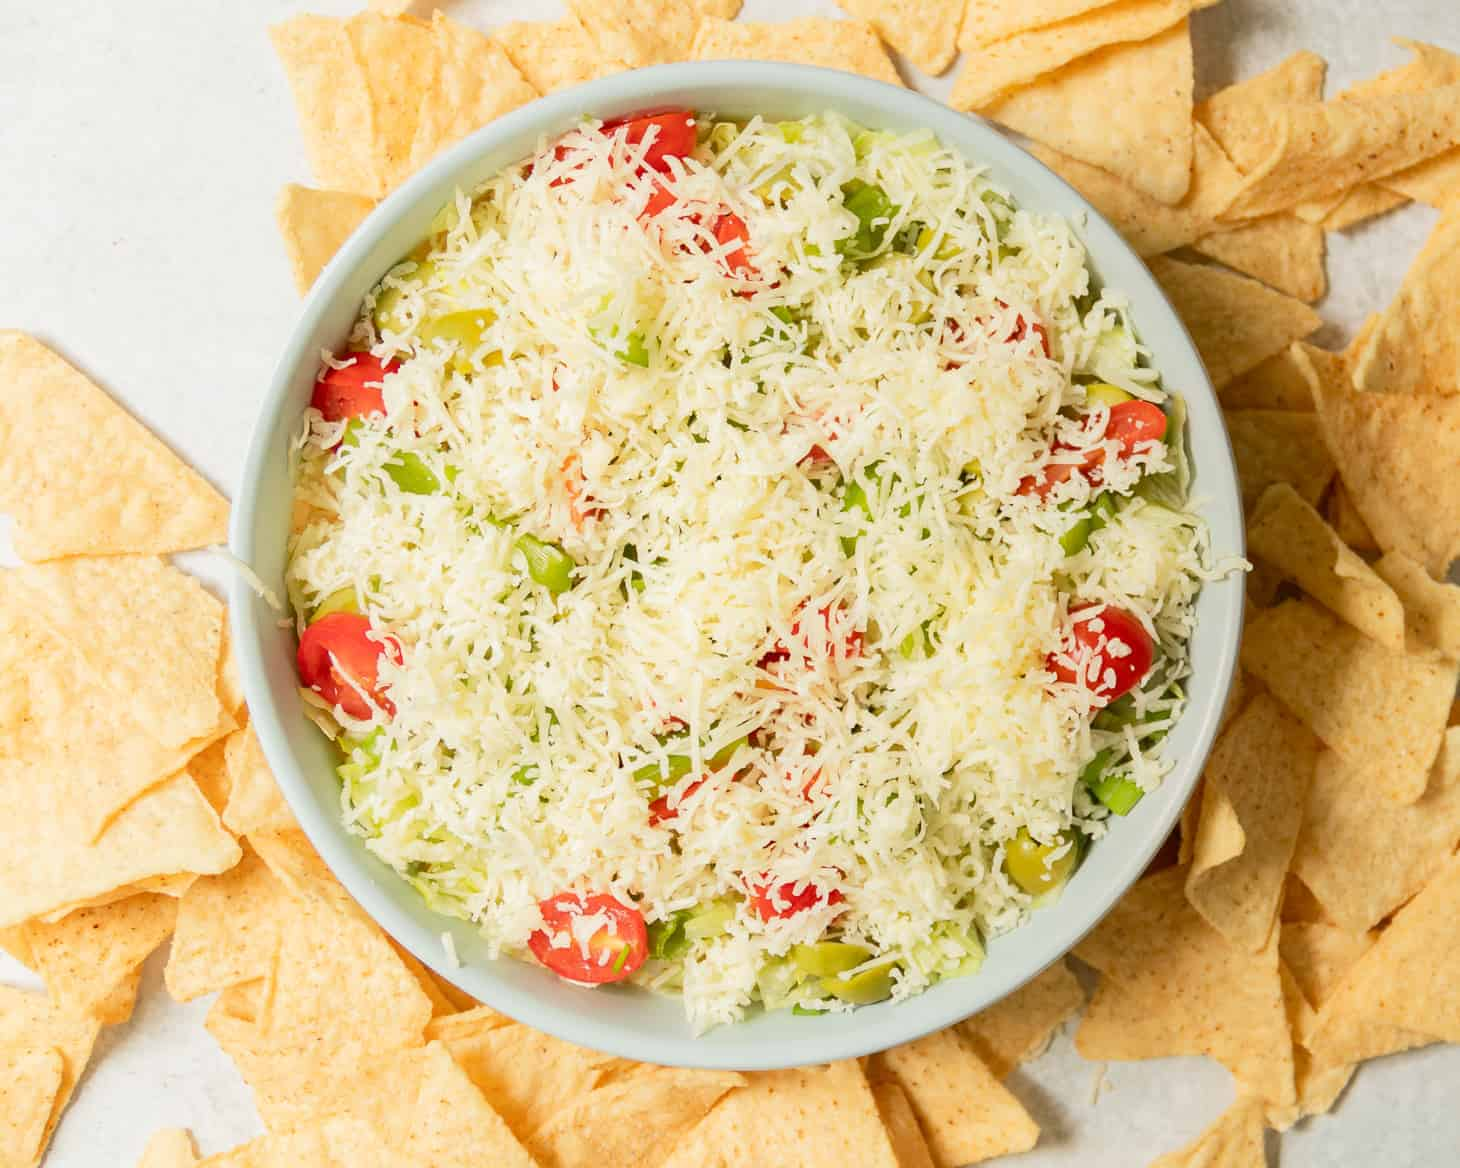 A bowl of taco dip with chips